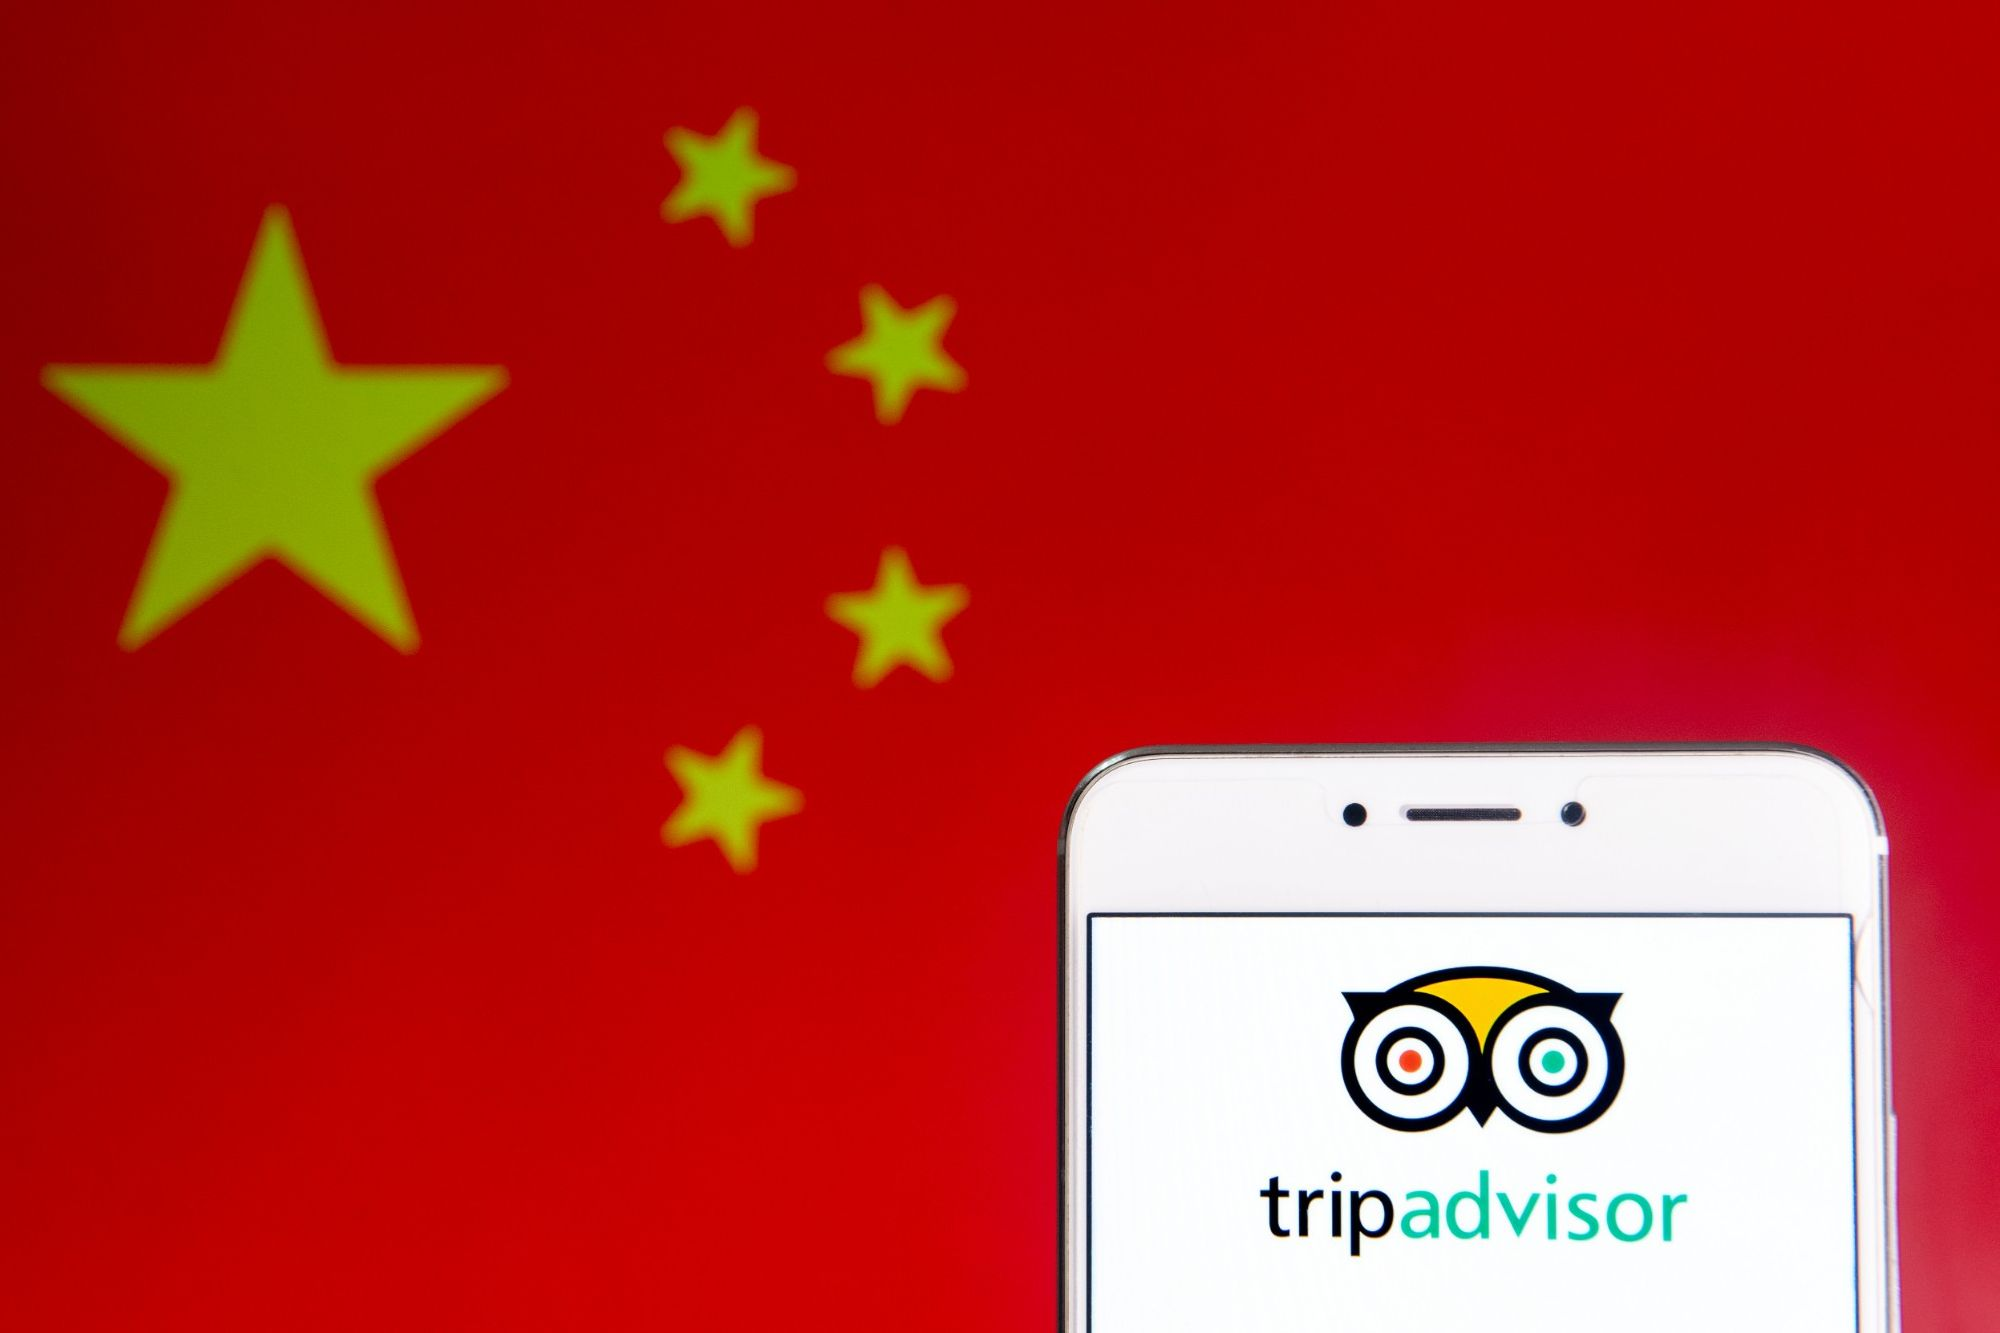 TripAdvisor Gets Thumbs Down From Stock Market After Earnings Report